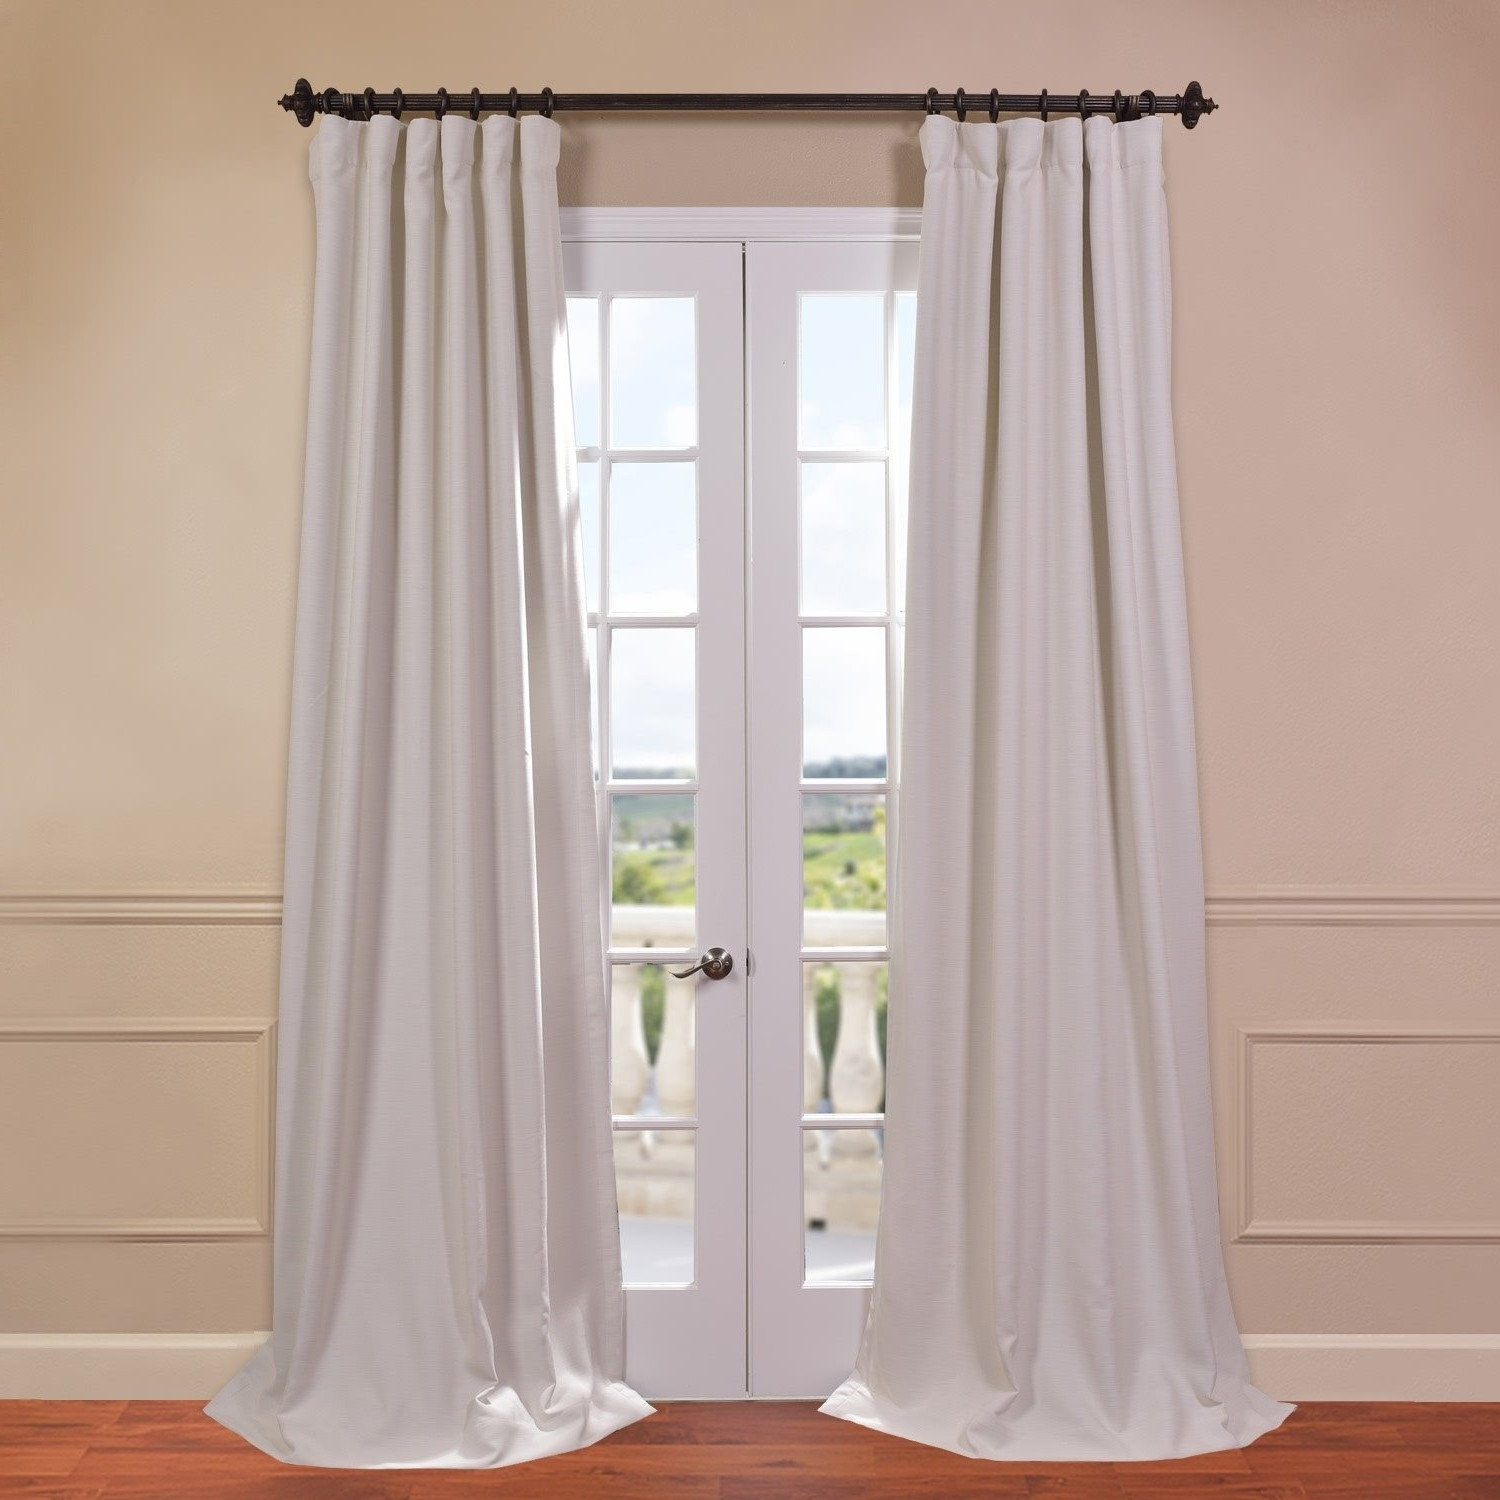 Lofty Inspiration Blackout Curtains 108 Inches Blackout Curtains With Regard To Long Drop Curtains (Image 11 of 15)